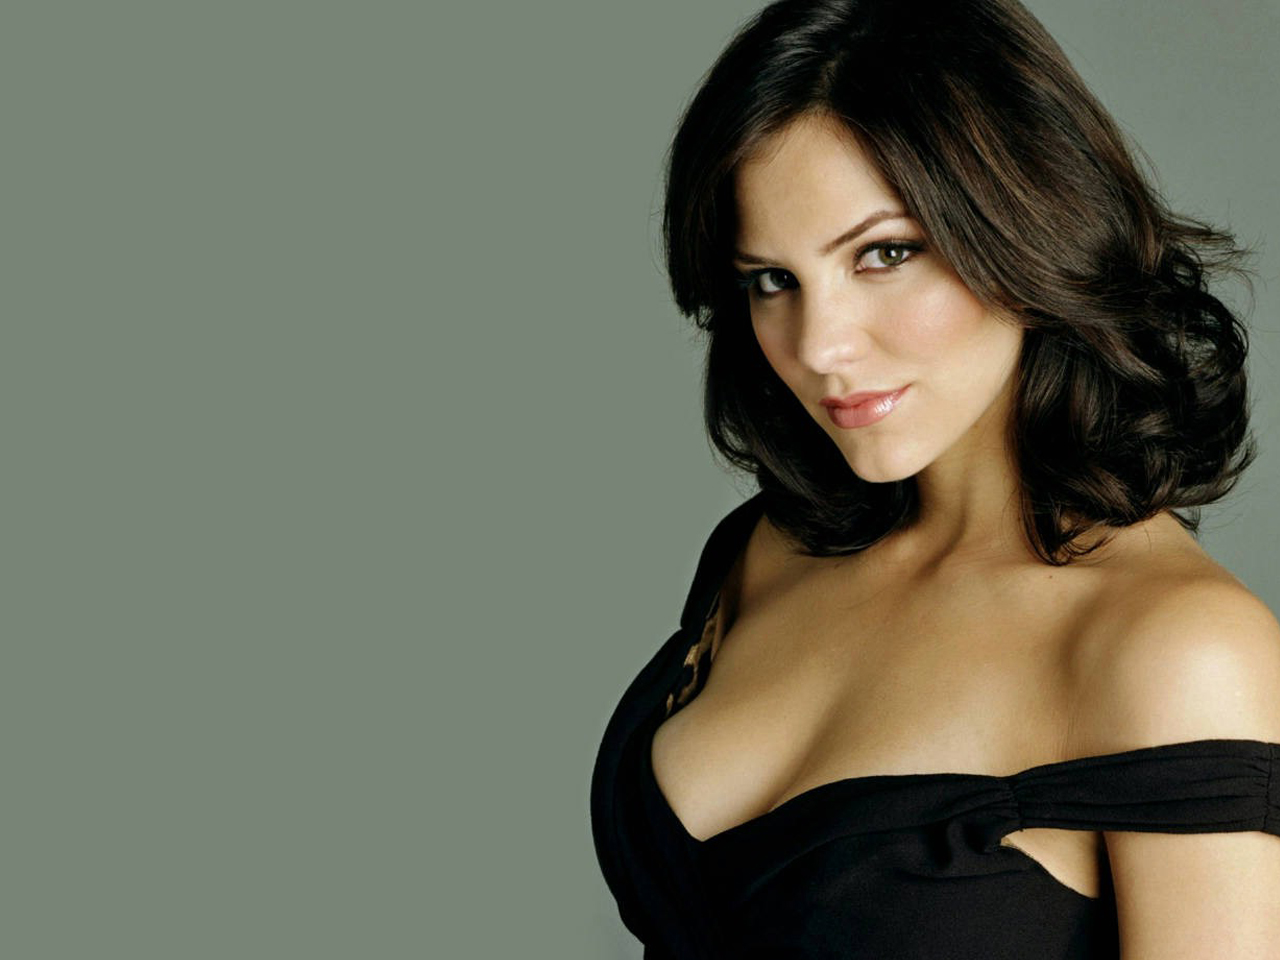 Katharine Mcphee Hot hd Wallpaper